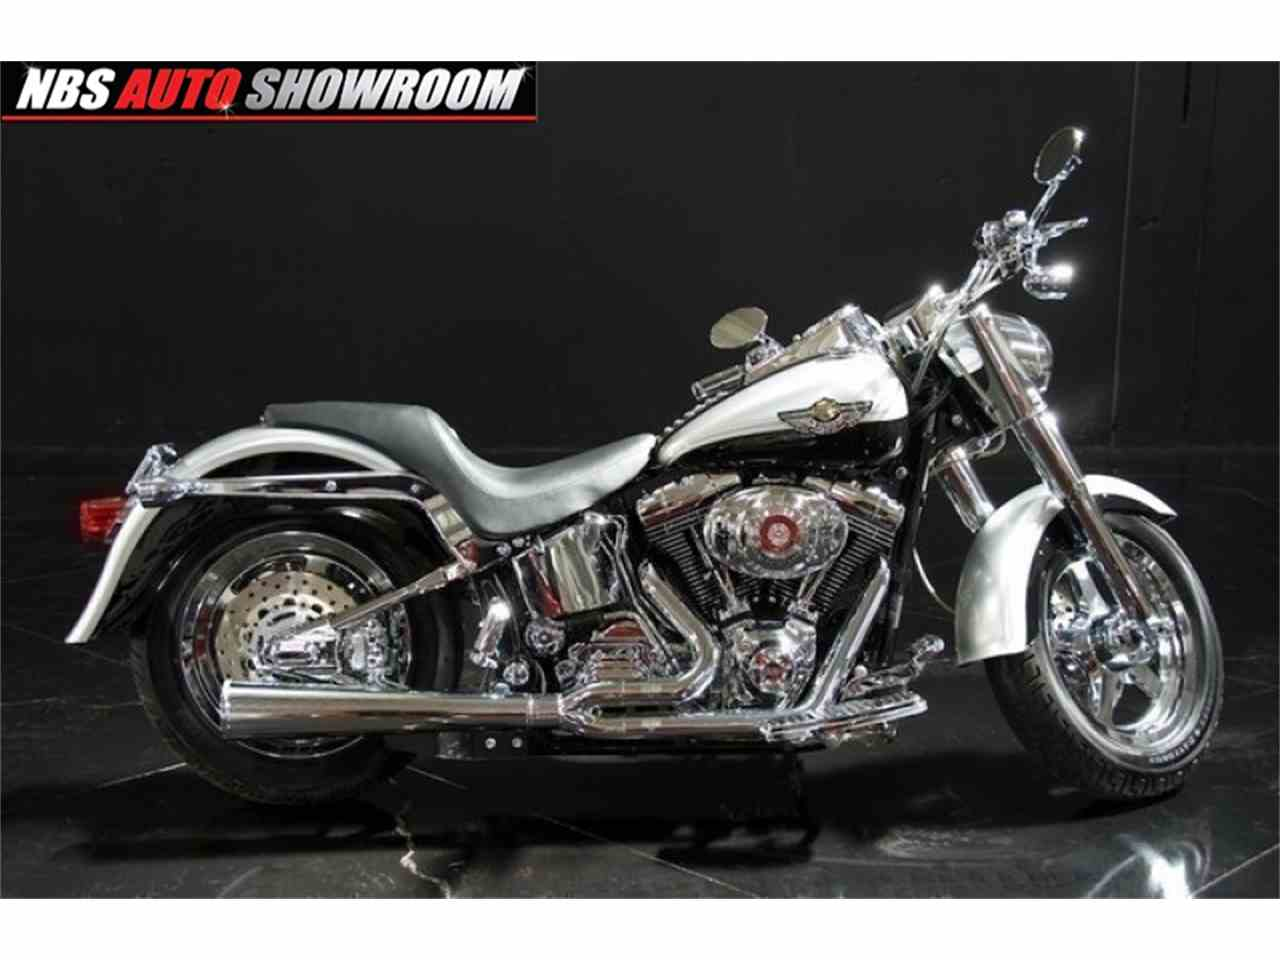 Large Picture of 2003 SCREAMING EAGLE located in Milpitas California - $8,003.00 Offered by NBS Auto Showroom - IVXN